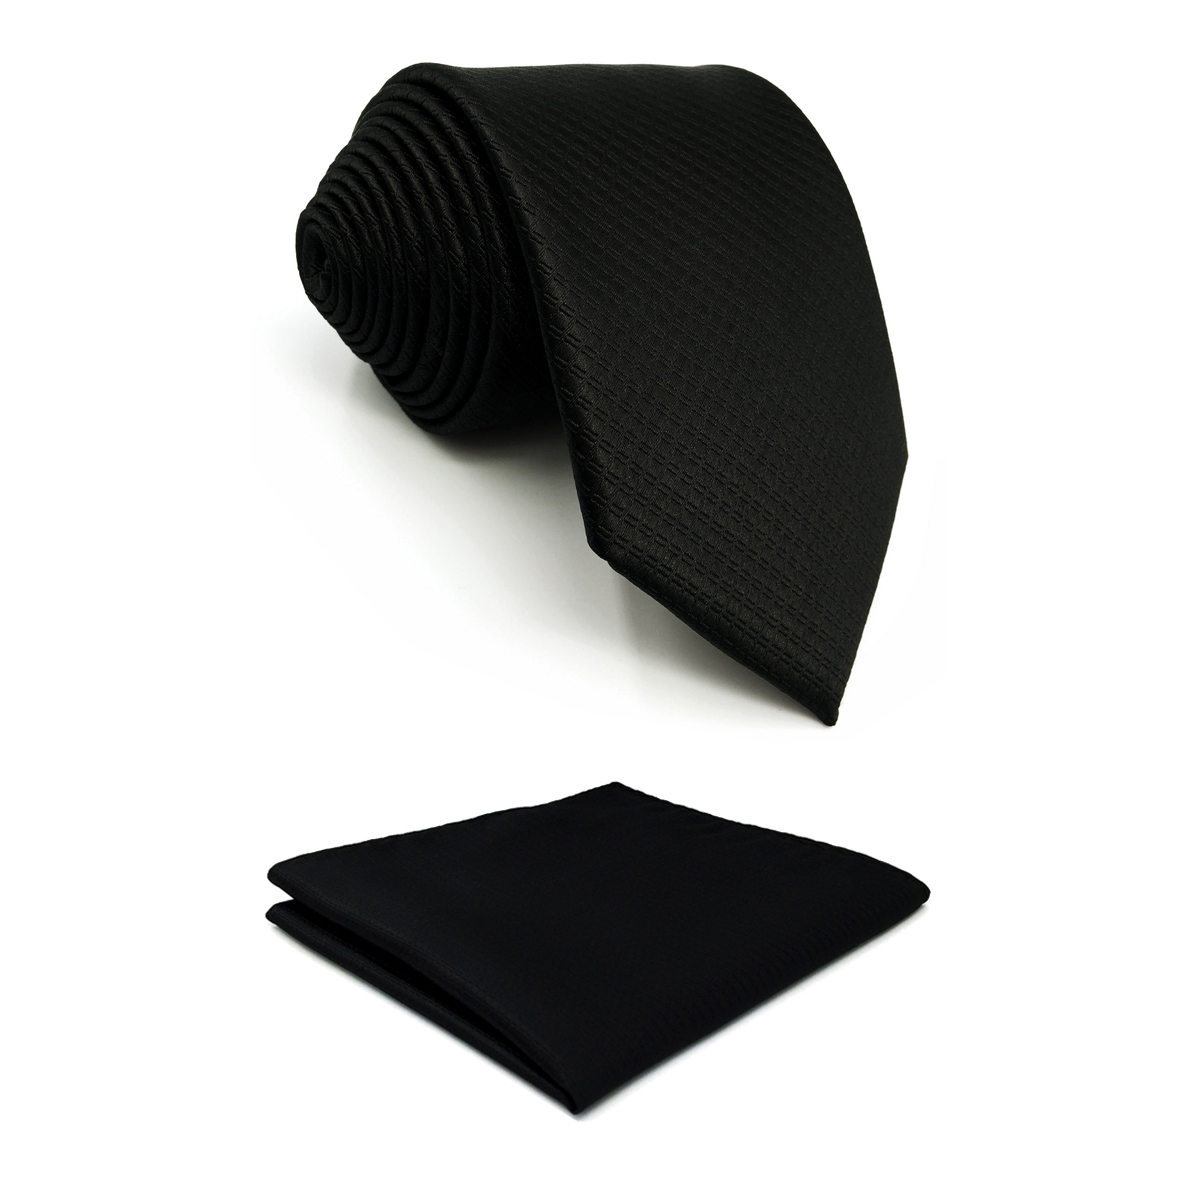 C28 Solid Black Ties For Men Tie Set Pocket Square Necktie